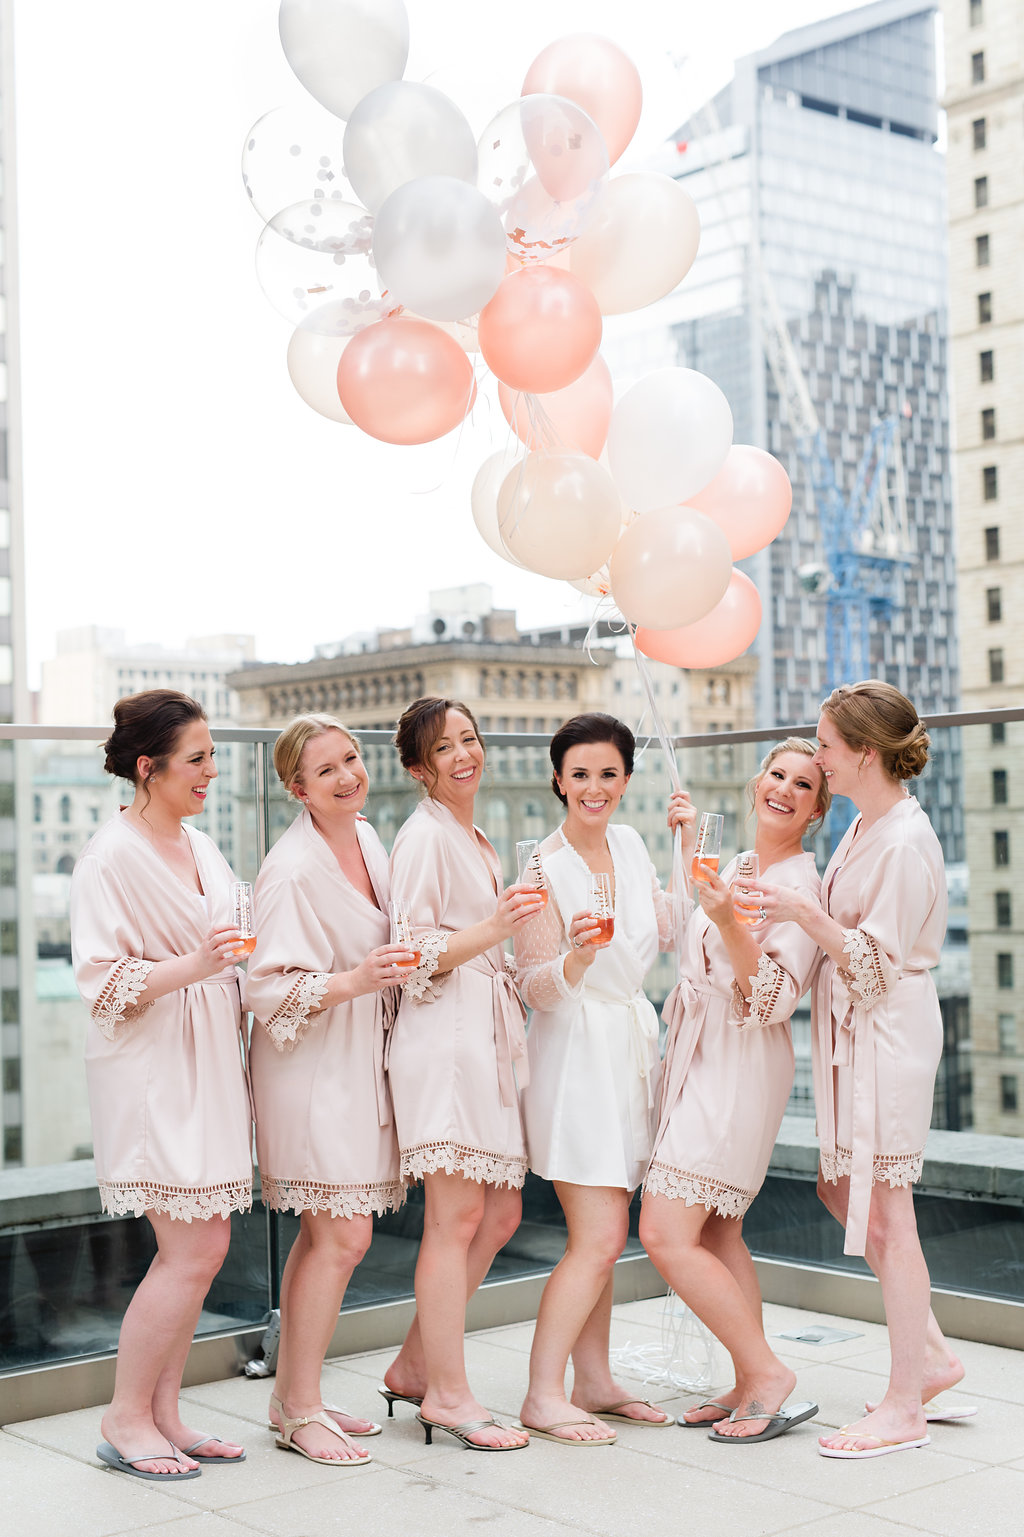 Bride bridesmaids champagne toast with balloons for Pittsburgh wedding at Hotel Monaco